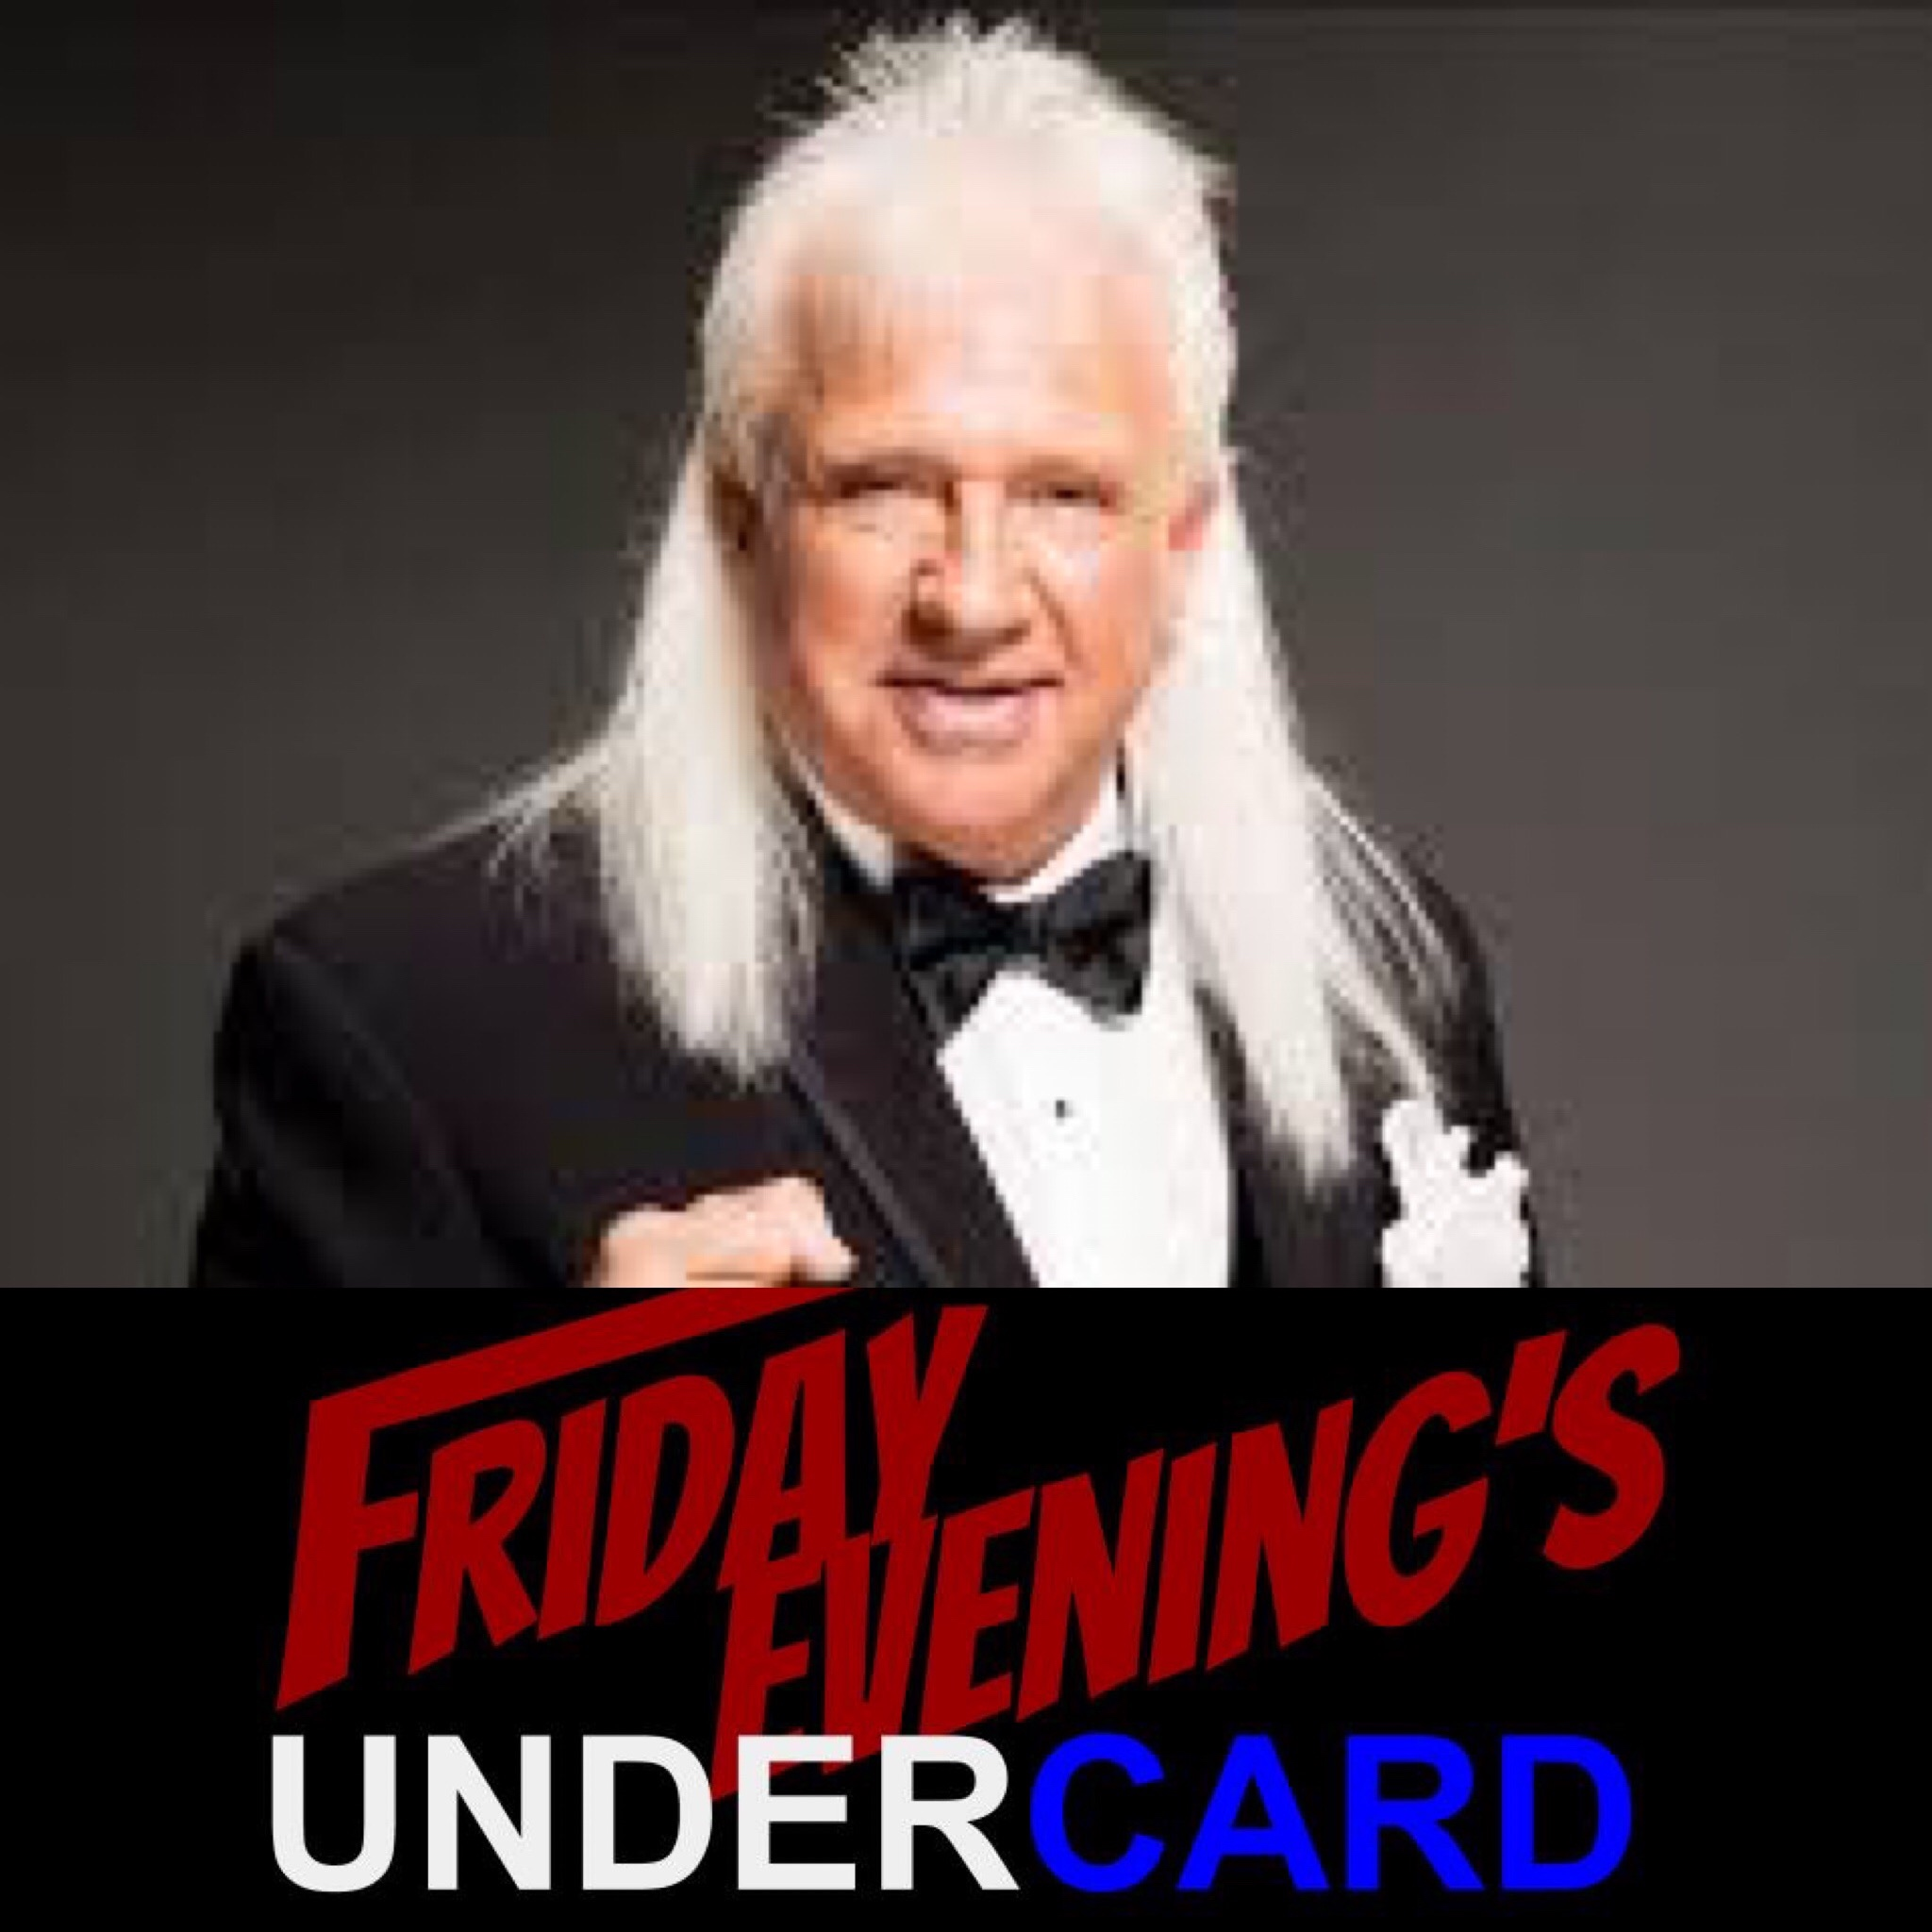 Ricky Morton — WWE Hall of Famer | Friday Evening's Undercard